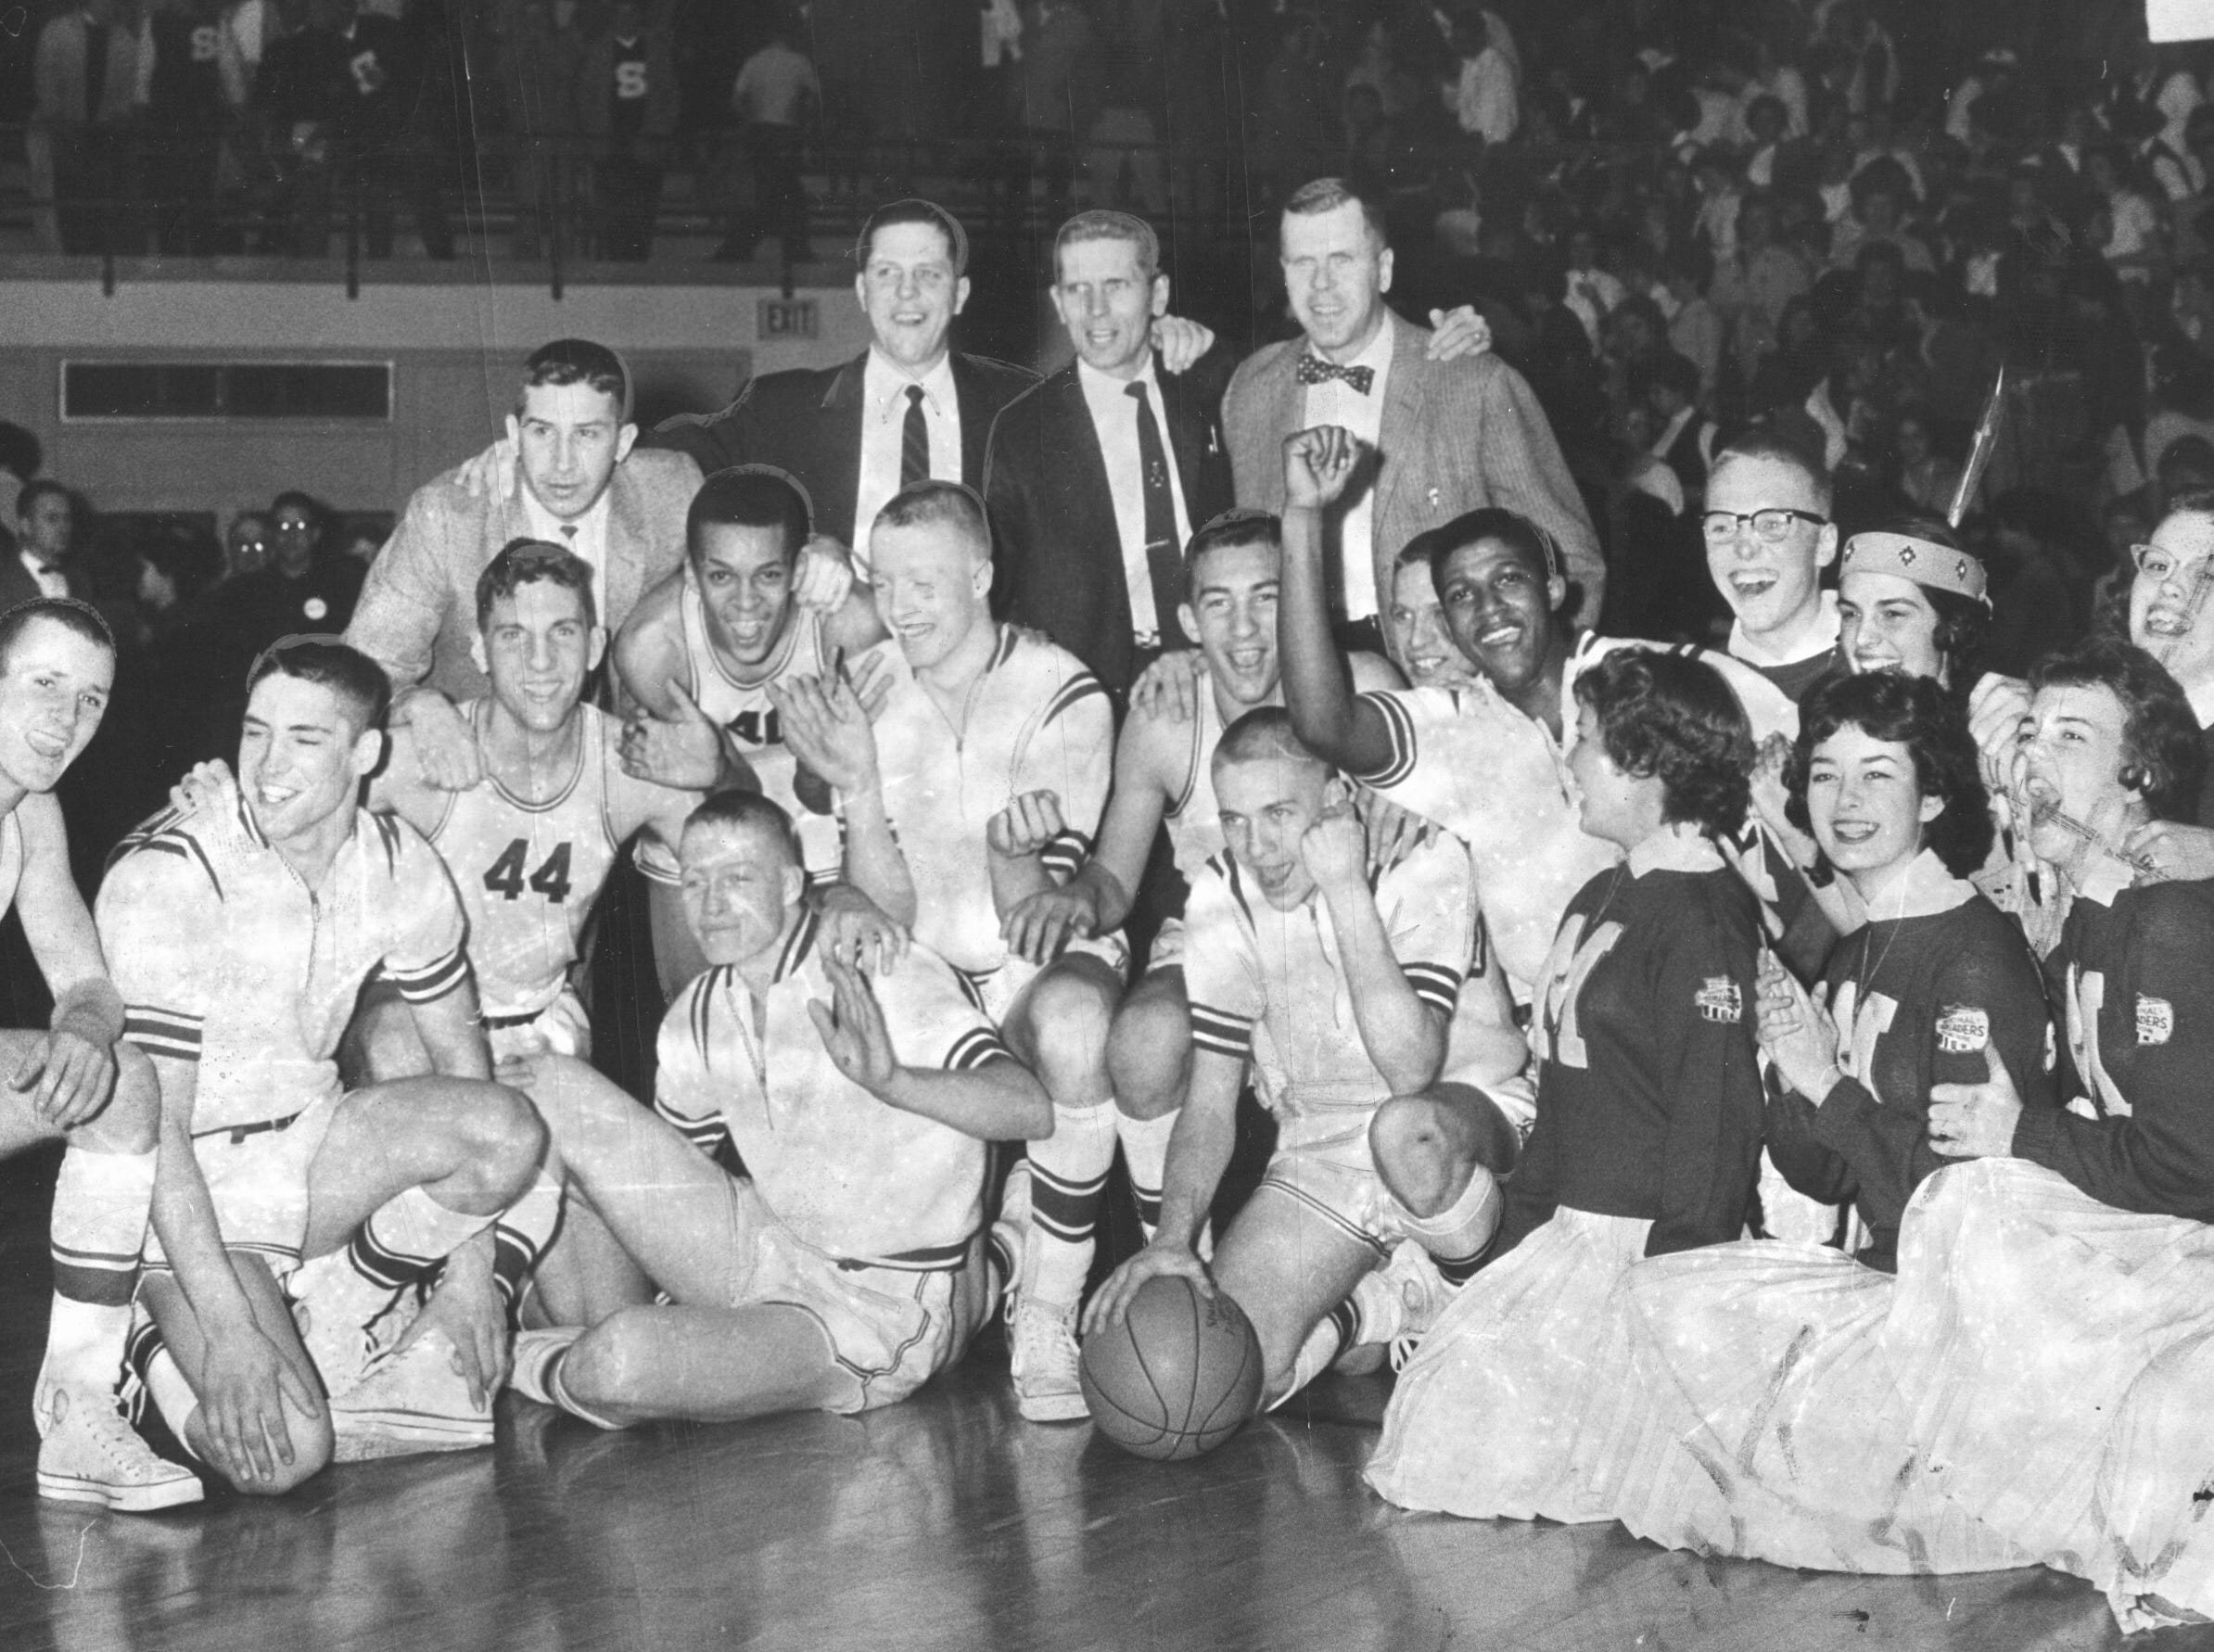 Manual, 1960. The Redskins celebrate after their 71-61 Southport Sectional victory over Southport Feb. 27, 1960. In the back row are coaches, Woody McBride, Head coach Dick Cummins, Paul Roberts and Harold Bennett. Players ini the front row are left to right - Ed Stiegelmeyer, Larry Short, Dick Foran #44, Leon Carter, #40, Dick Van Arsdale, Tom Van Arsdale, Dave Scheib, Jim Cummings, Armen Cobb and Roger Wood.  This was Manual's first sectional victory in 37 years.